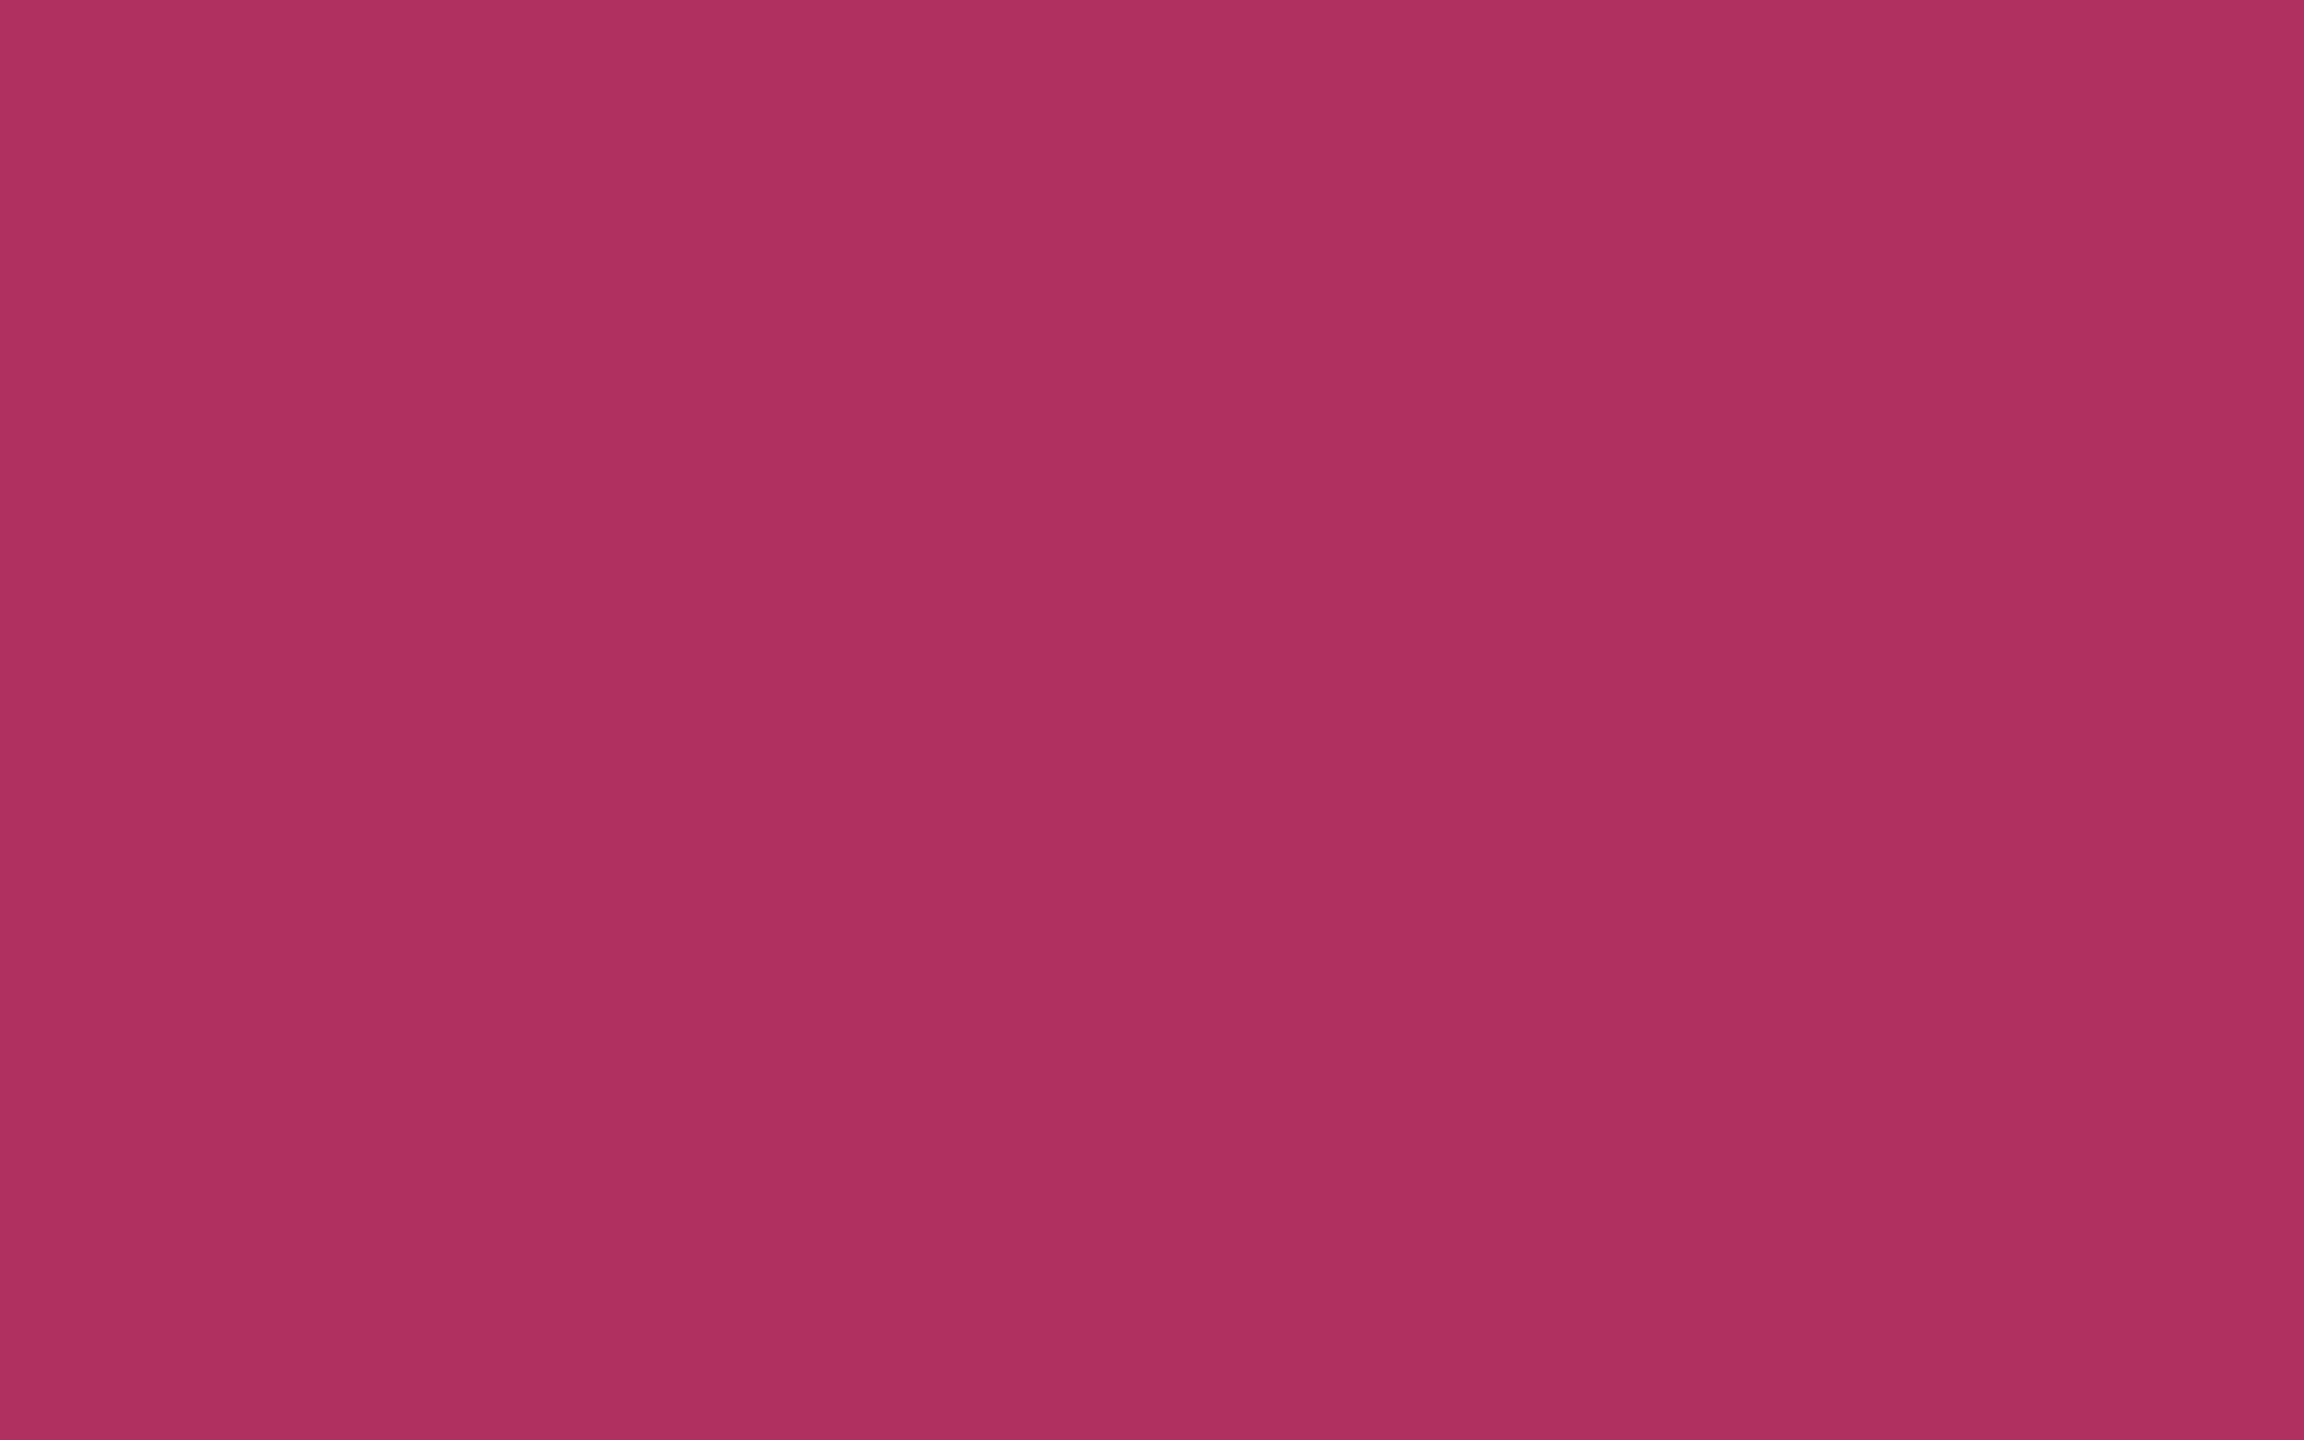 2304x1440 Maroon X11 Gui Solid Color Background